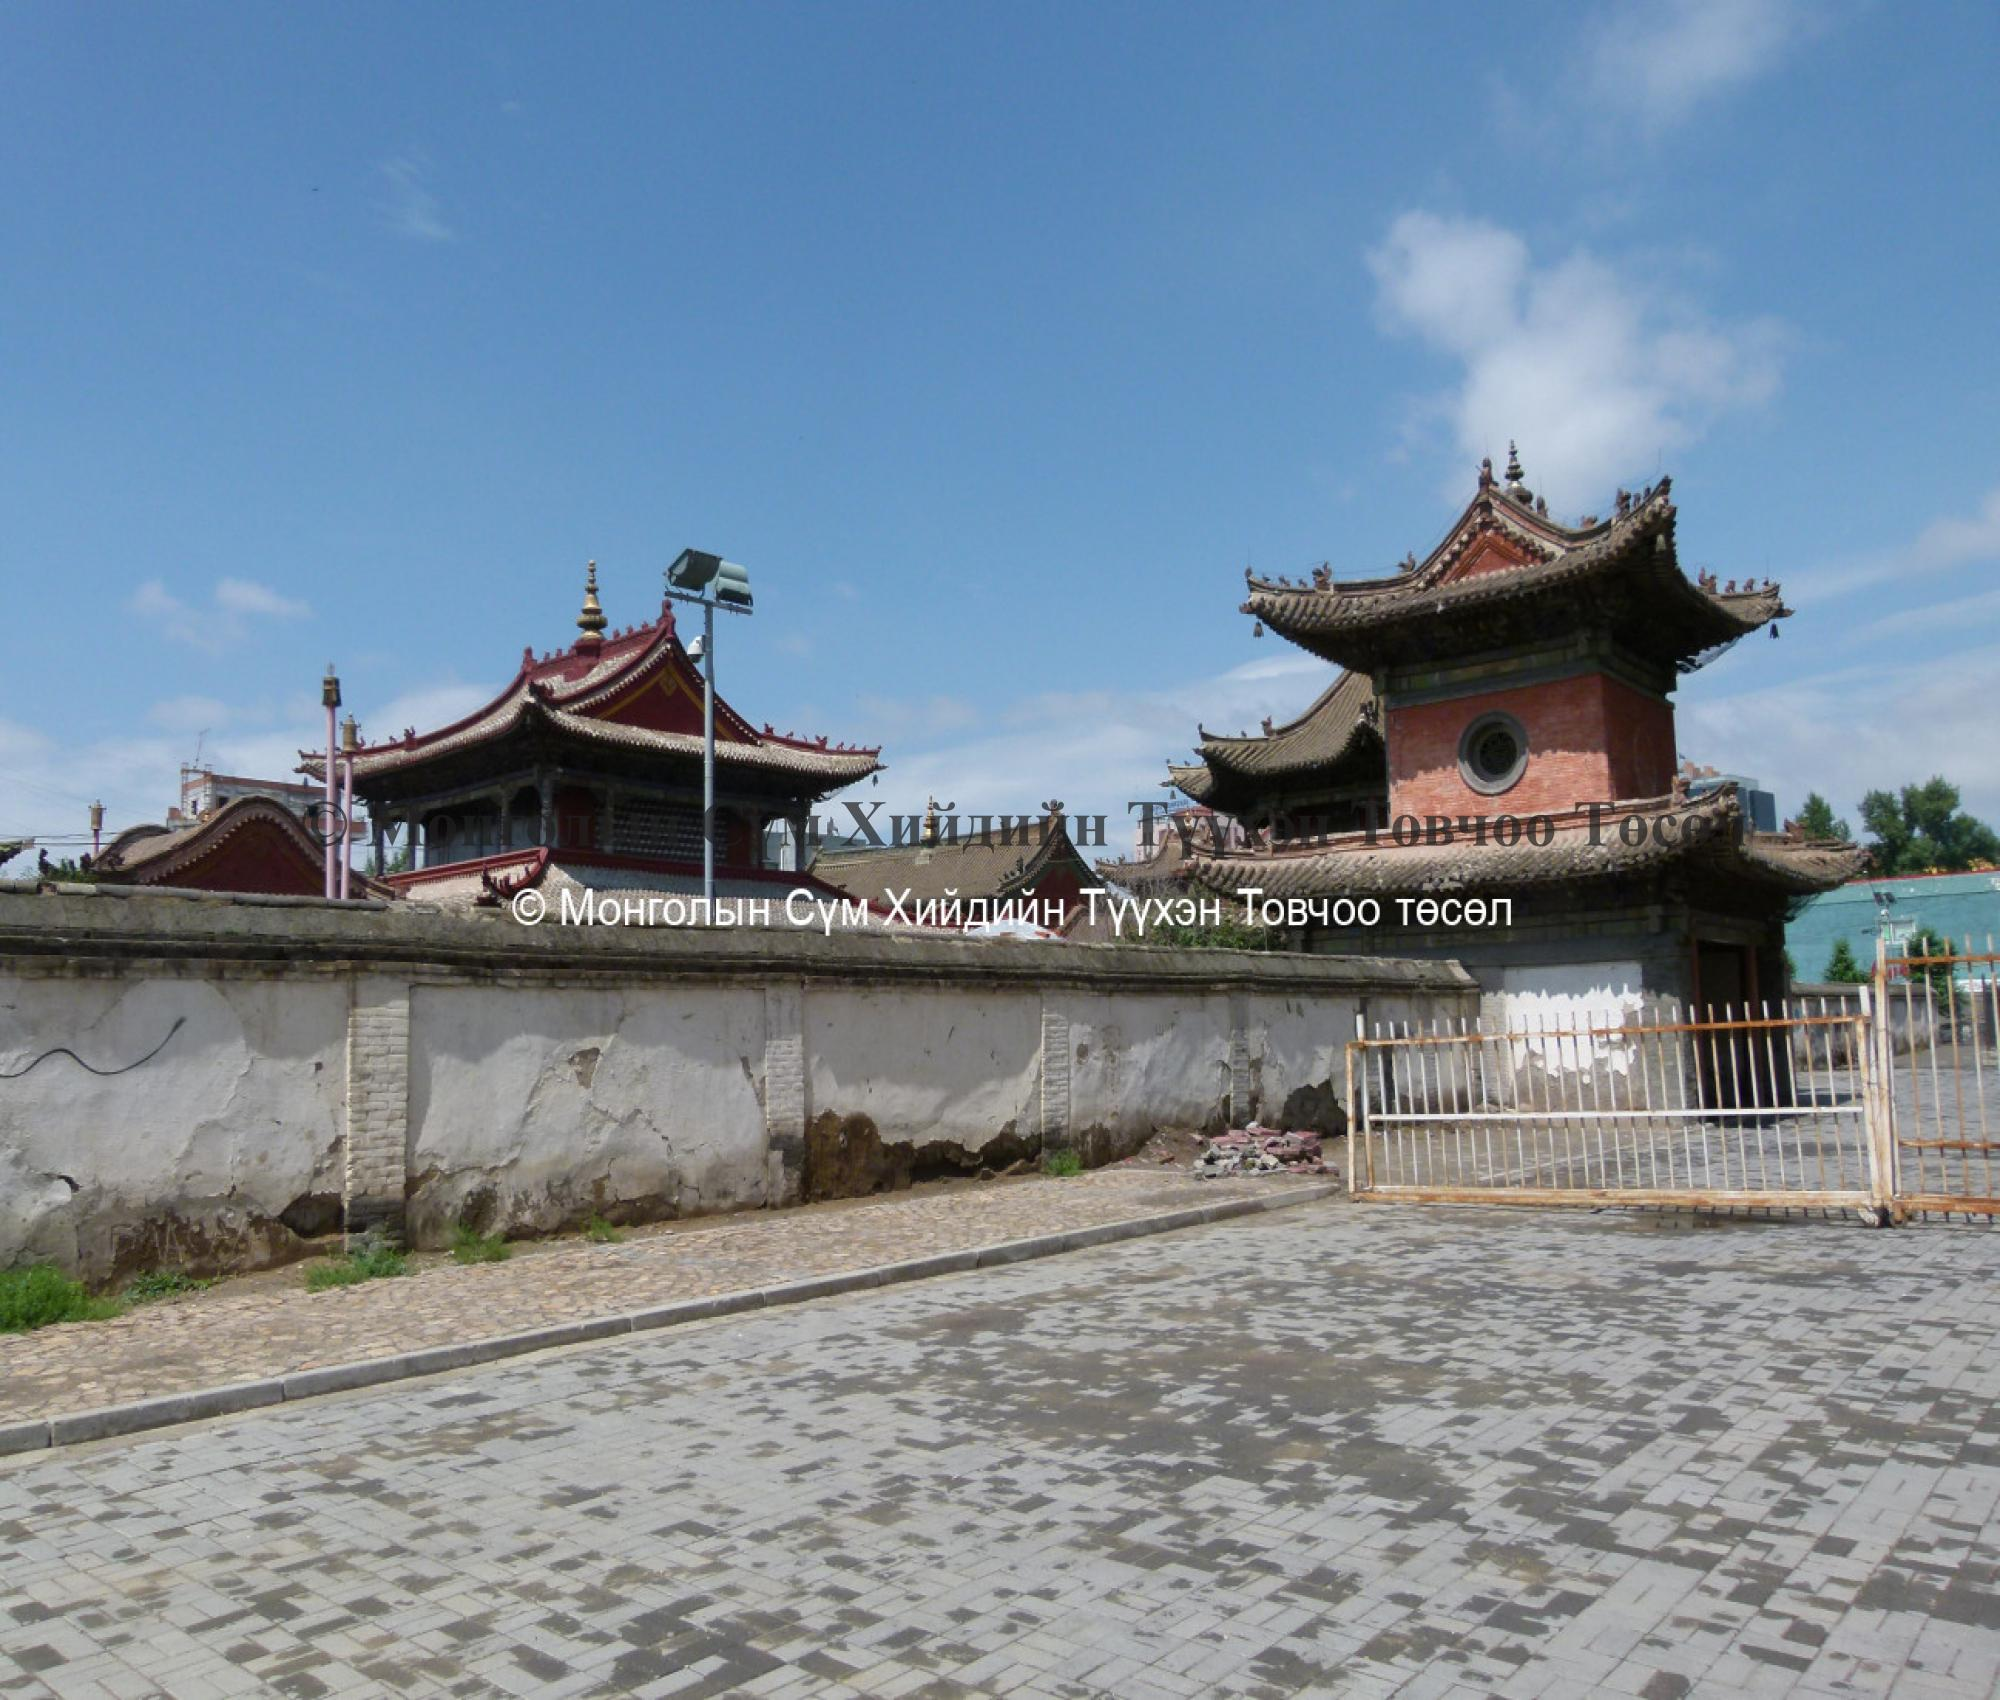 Eastern entrance of Choijin Lama's Temple Complex